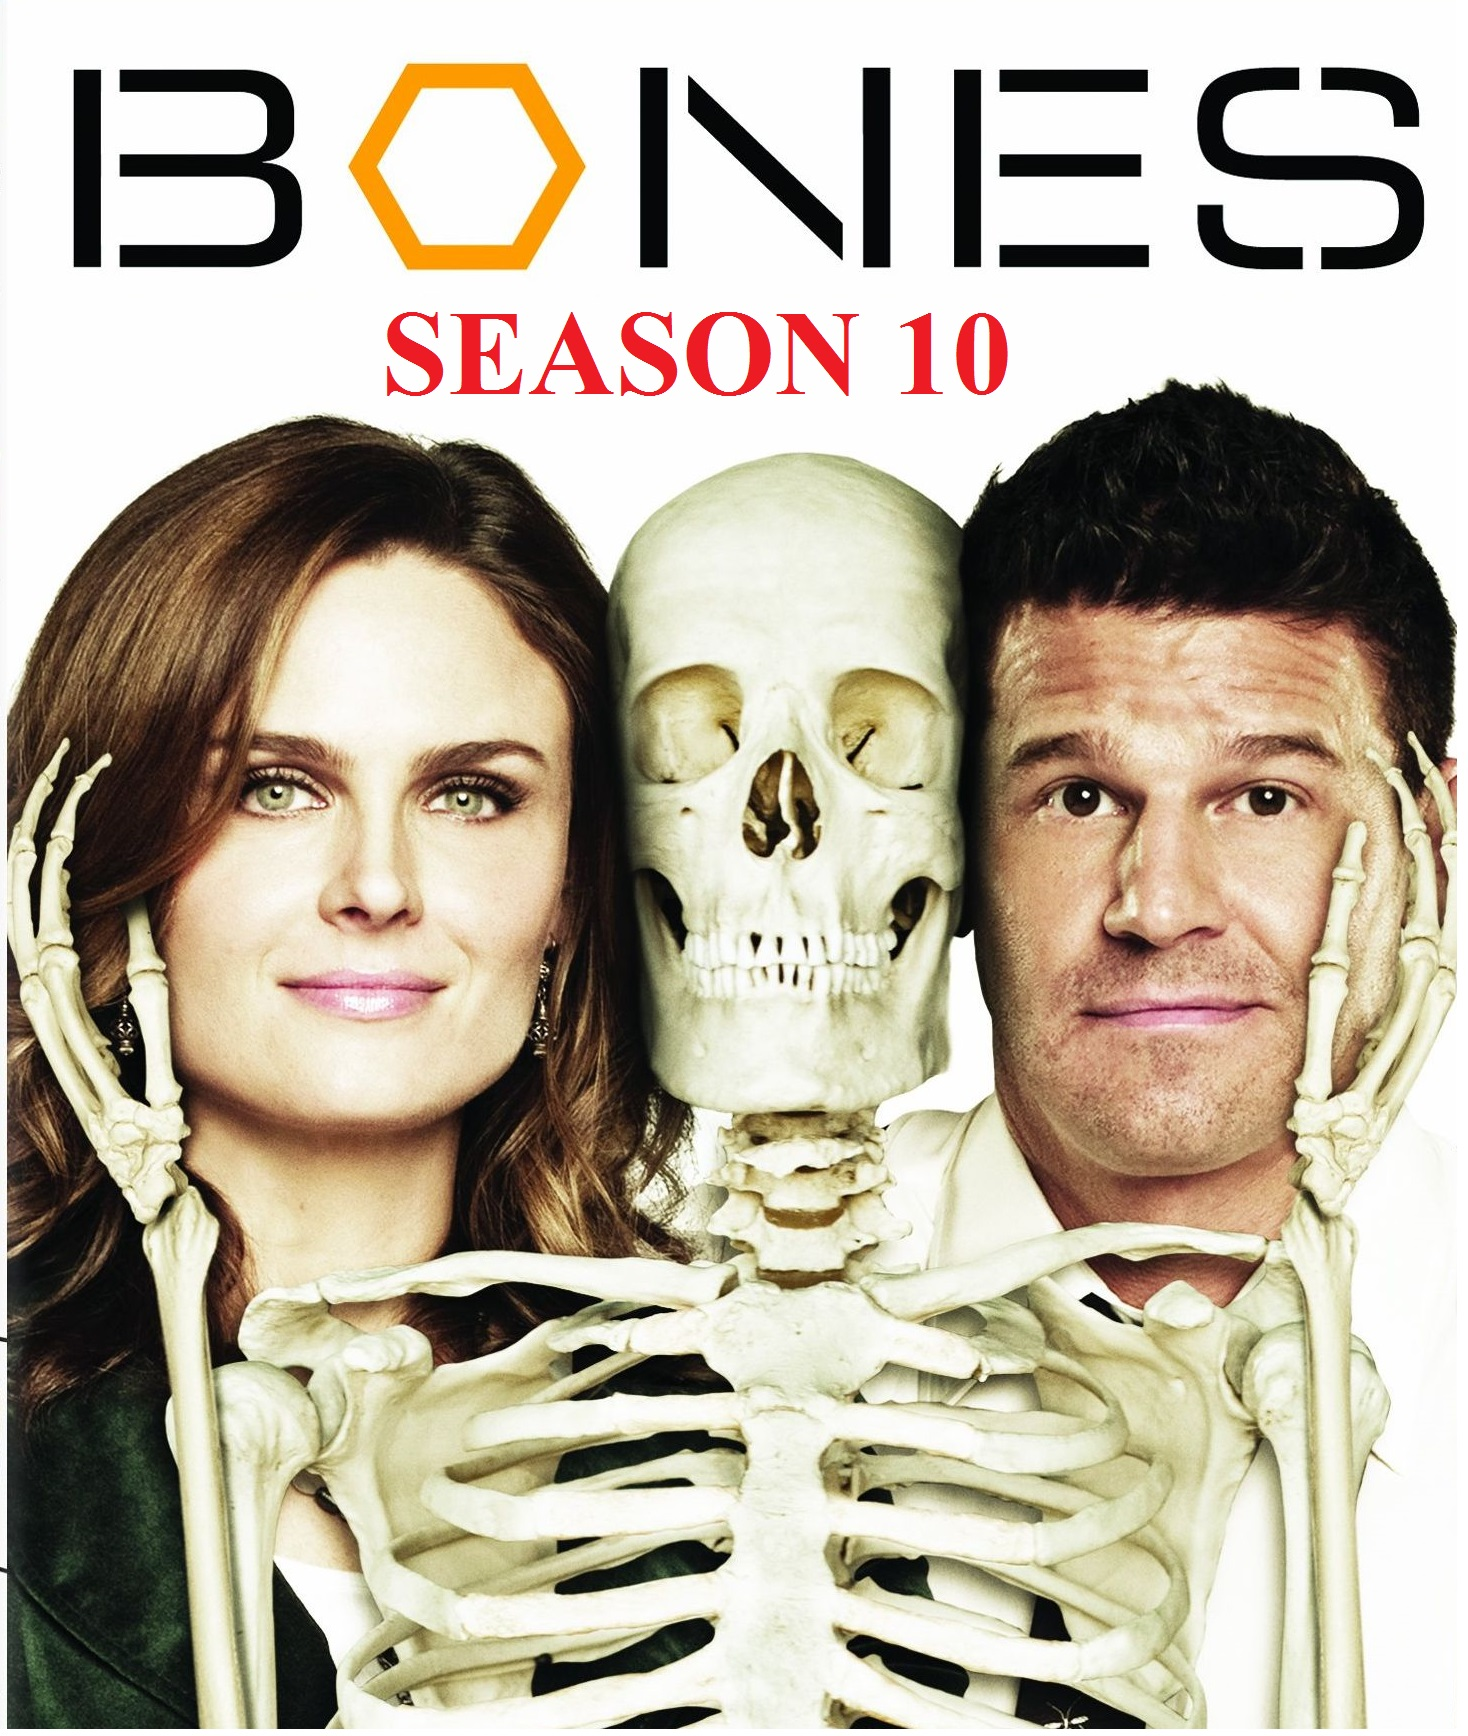 is cam dating arastoo Bones season 12 spoilers: will cam and arastoo ever get married wedding postponed due to brennan's abduction.